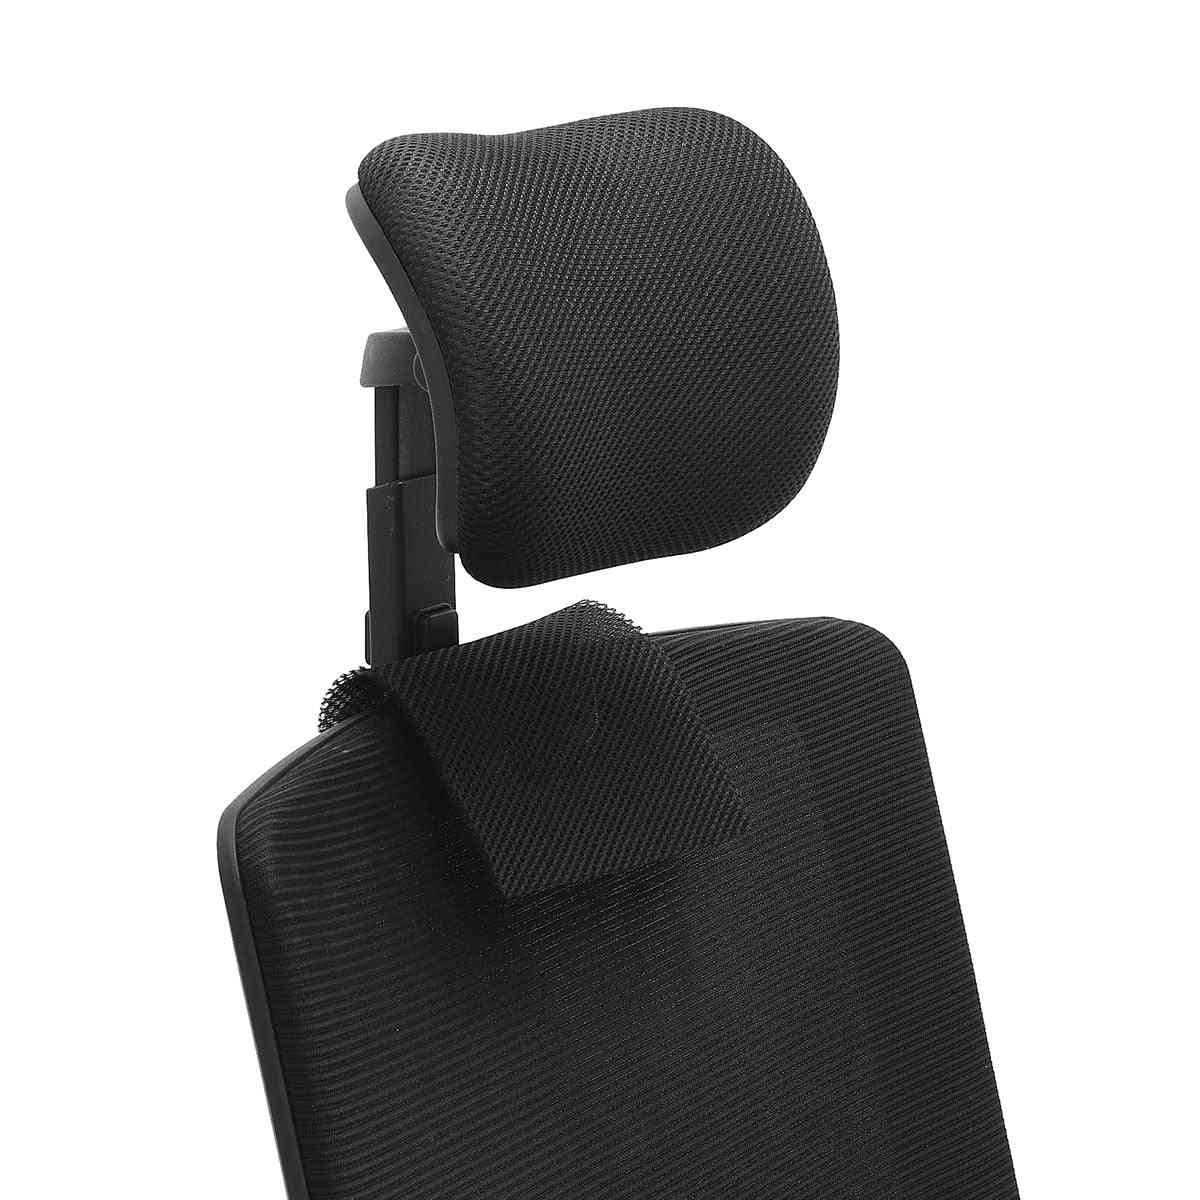 Computer Chair Headrest Pillow Adjustable Headrest For Chair Office Neck Protection Headrest For Office Chair Accessories